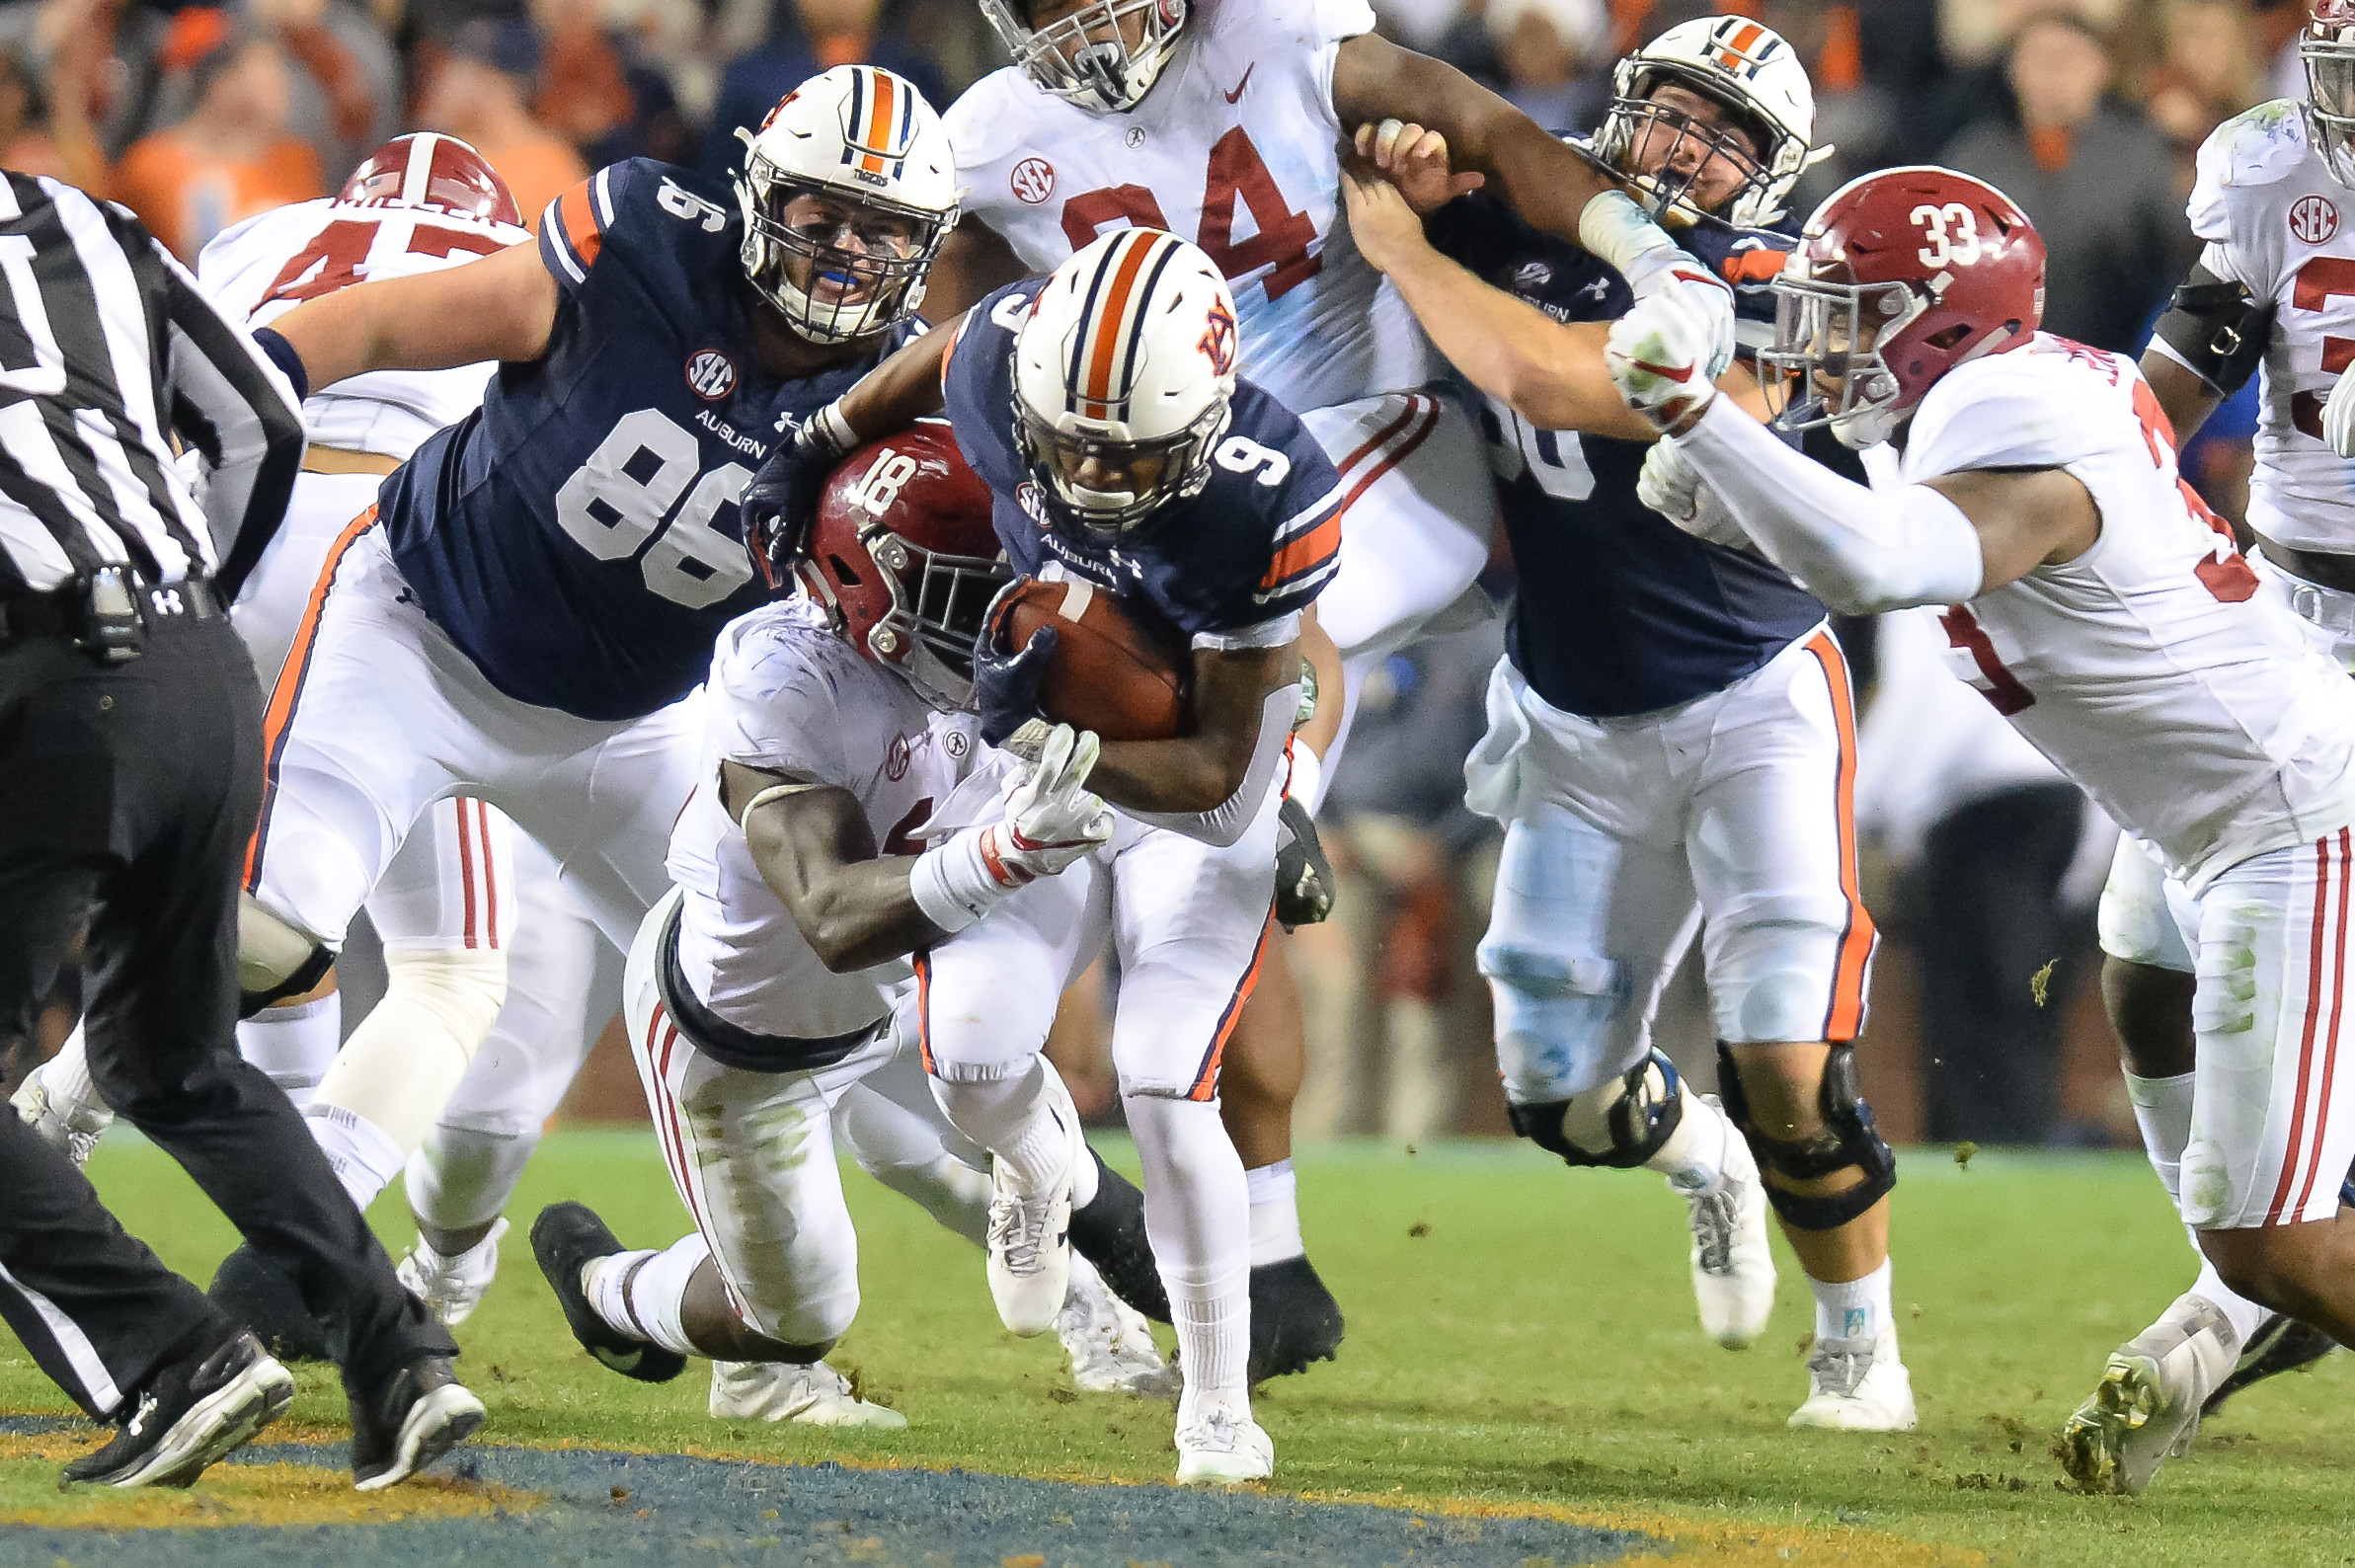 Auburn Tigers running back Kam Martin (9) is tackled by Alabama Crimson Tide linebacker Dylan Moses (18) during the second half of Saturday's game, at Jordan-Hare Stadium.